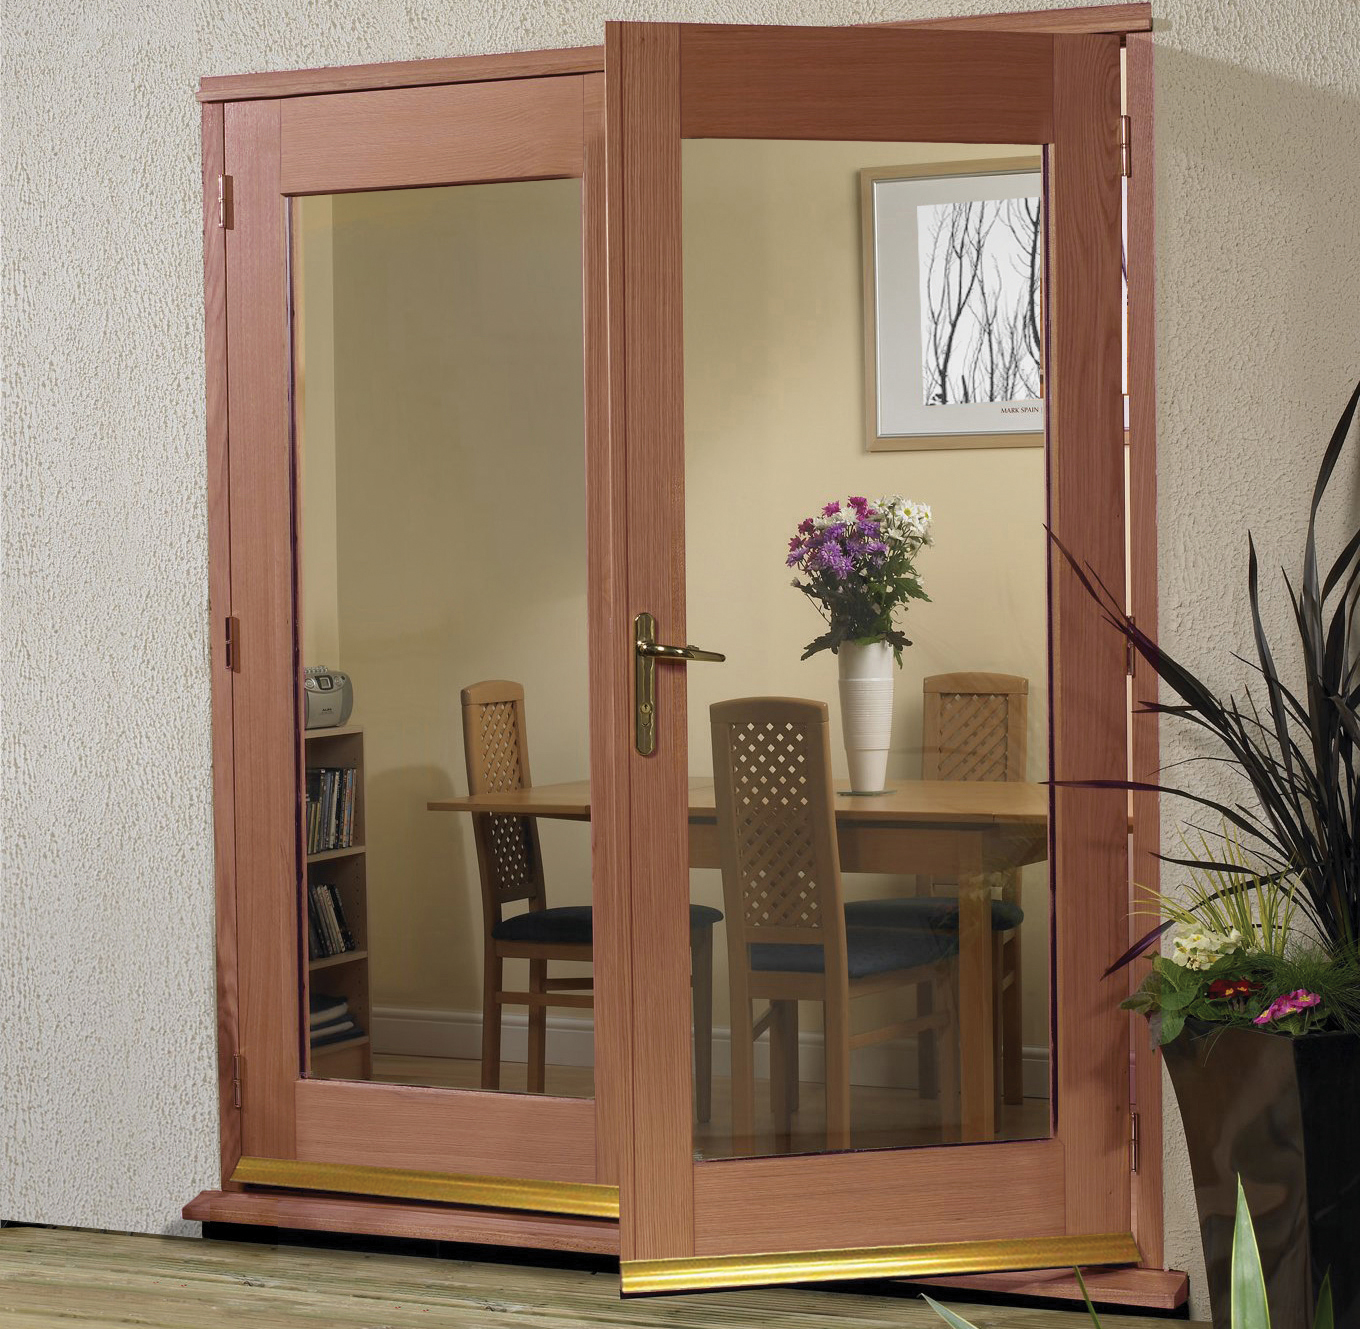 Xl la porte hardwood french doors for Hardwood french doors